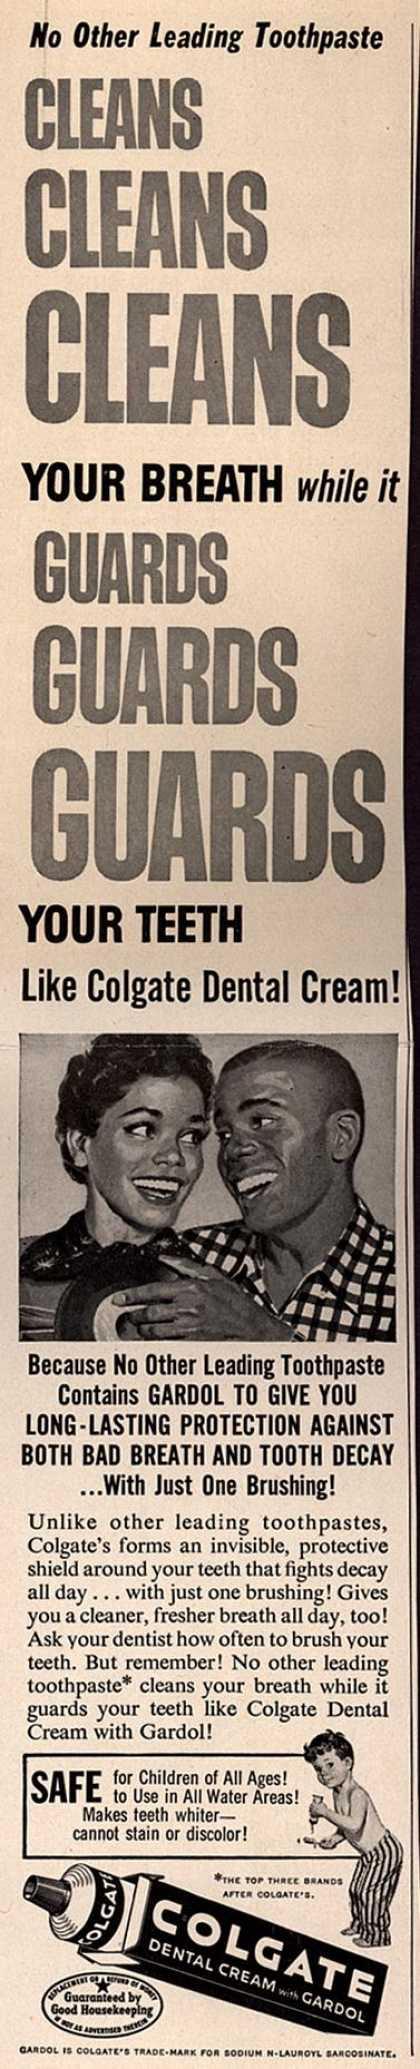 Colgate – No other leading toothpaste Cleans Cleans Cleans Your Breath while it Guards Guards Guards Your Teeth Like Colgate Dental Cream (1957)